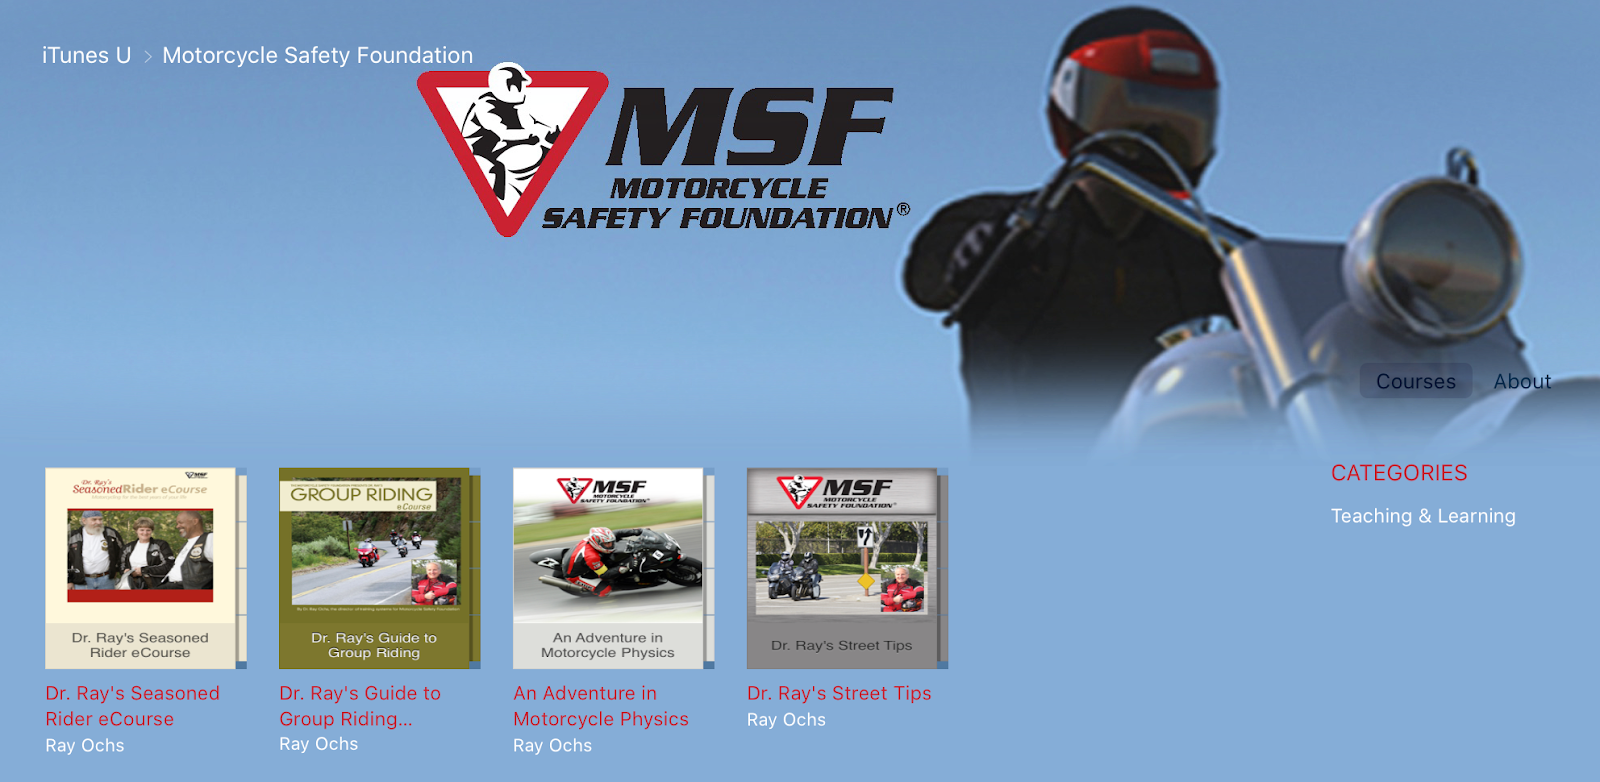 200520 Stay Safe this Memorial Day and the Rest of Motorcycle Safety Awareness Month